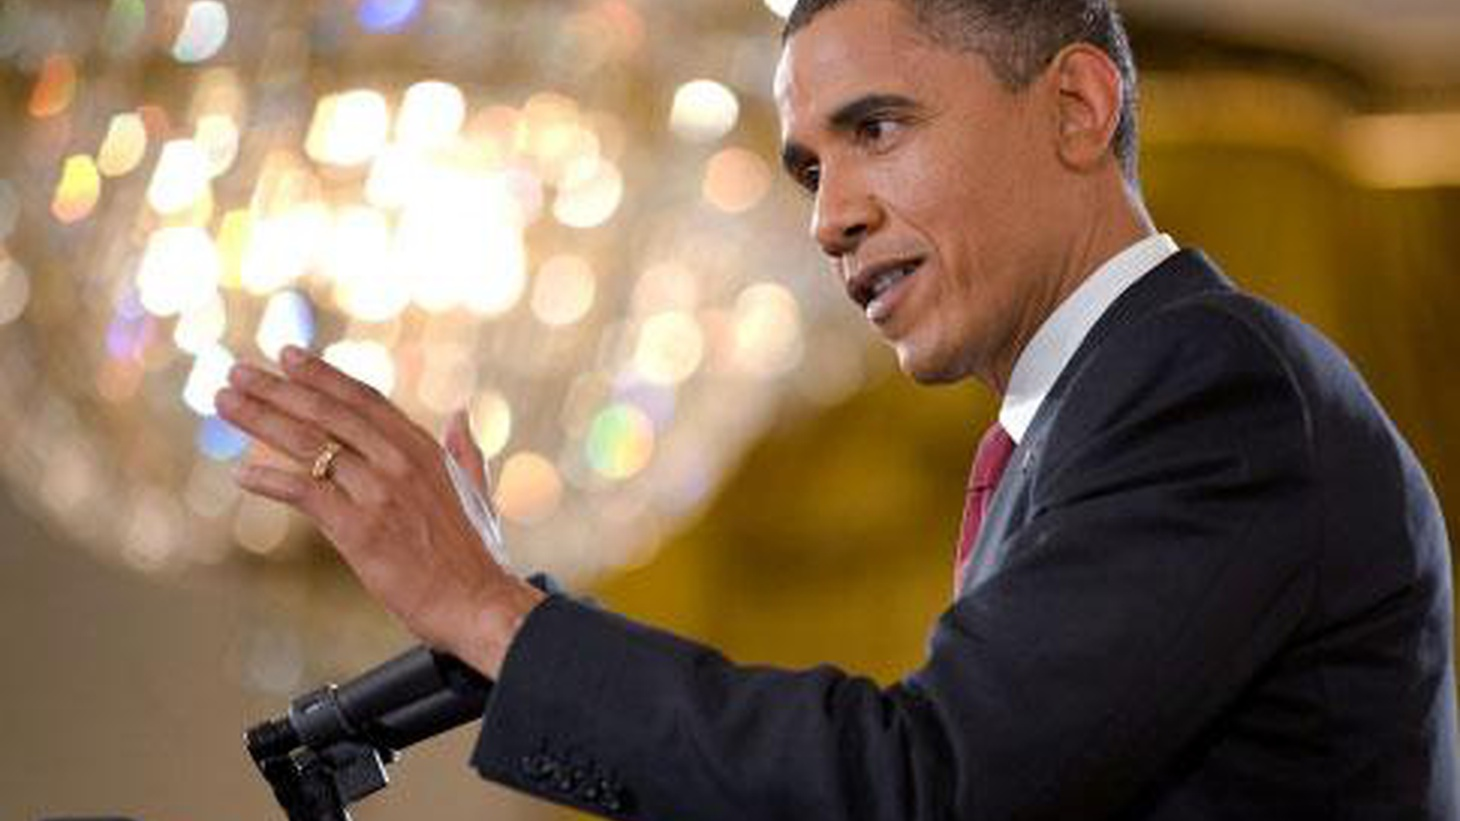 With Republicans expected to win control of the House in today's midterm election, President Obama has scheduled a press conference for Wednesday, November 3 at 10am. The President is expected to address the power shift and answer reporter's questions. KCRW will carry NPR's live anchored coverage of the conference.